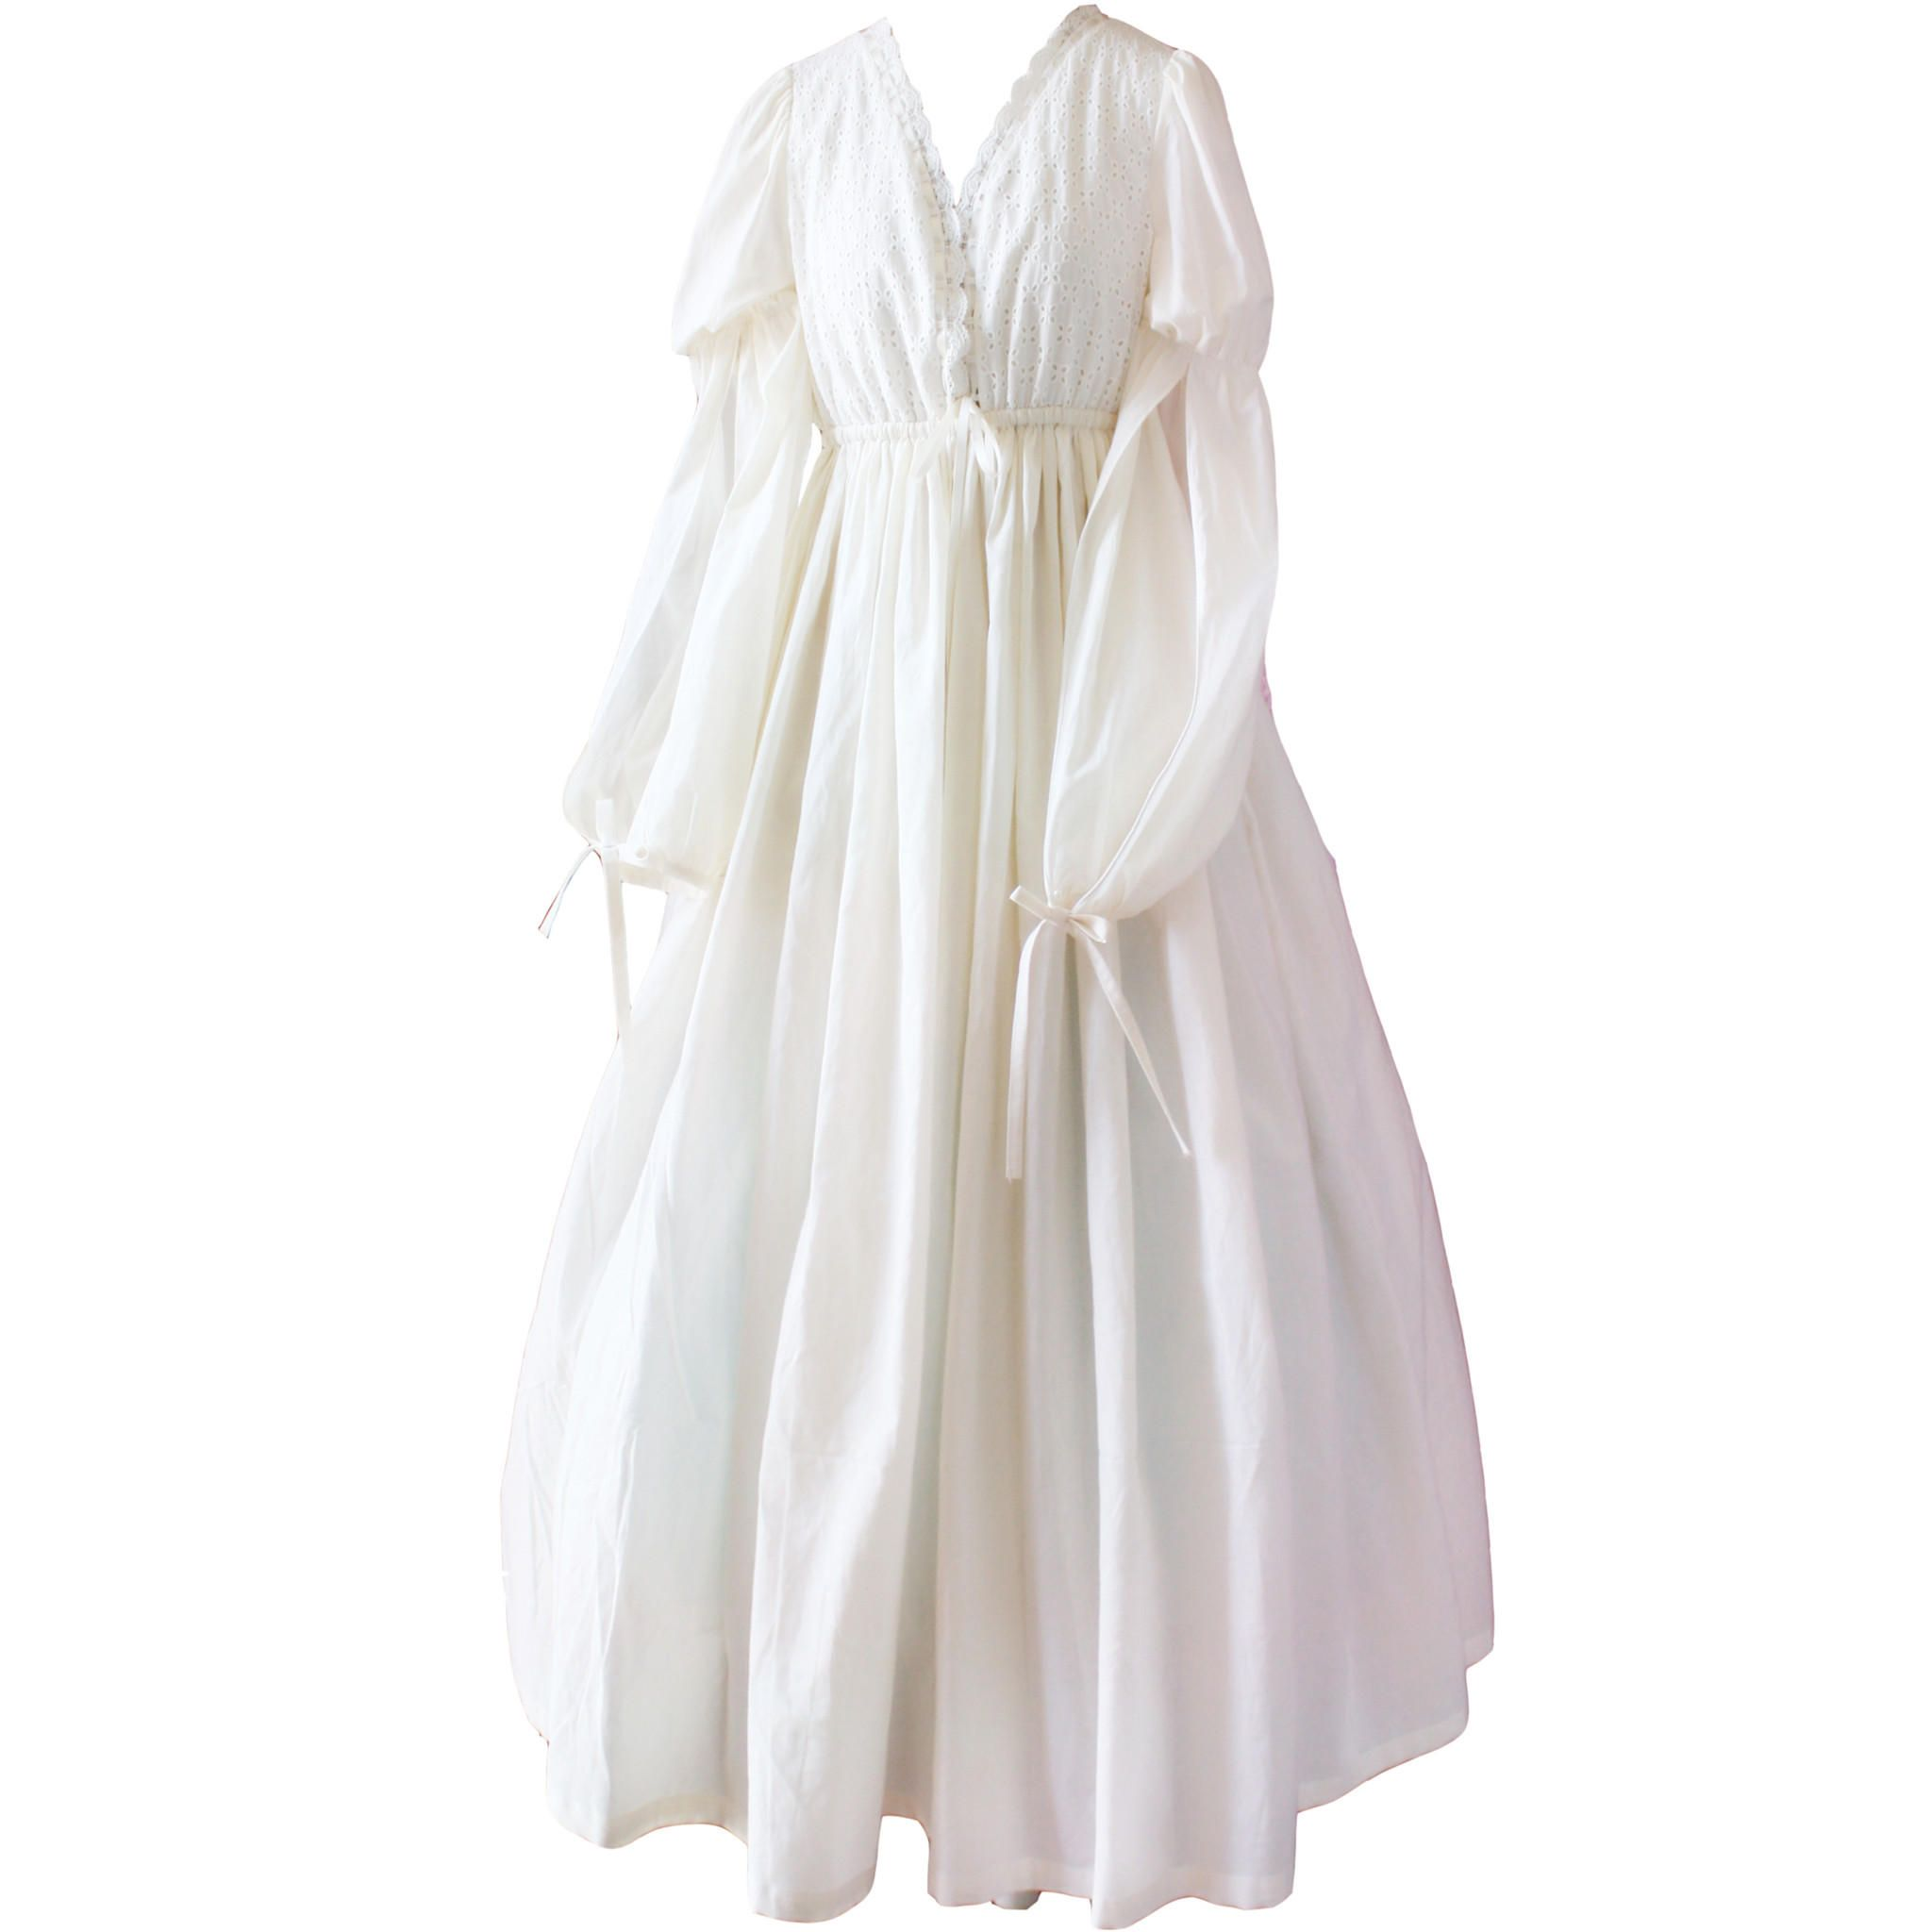 Vintage sexy sleepwear women cotton medieval nightgown white vneck